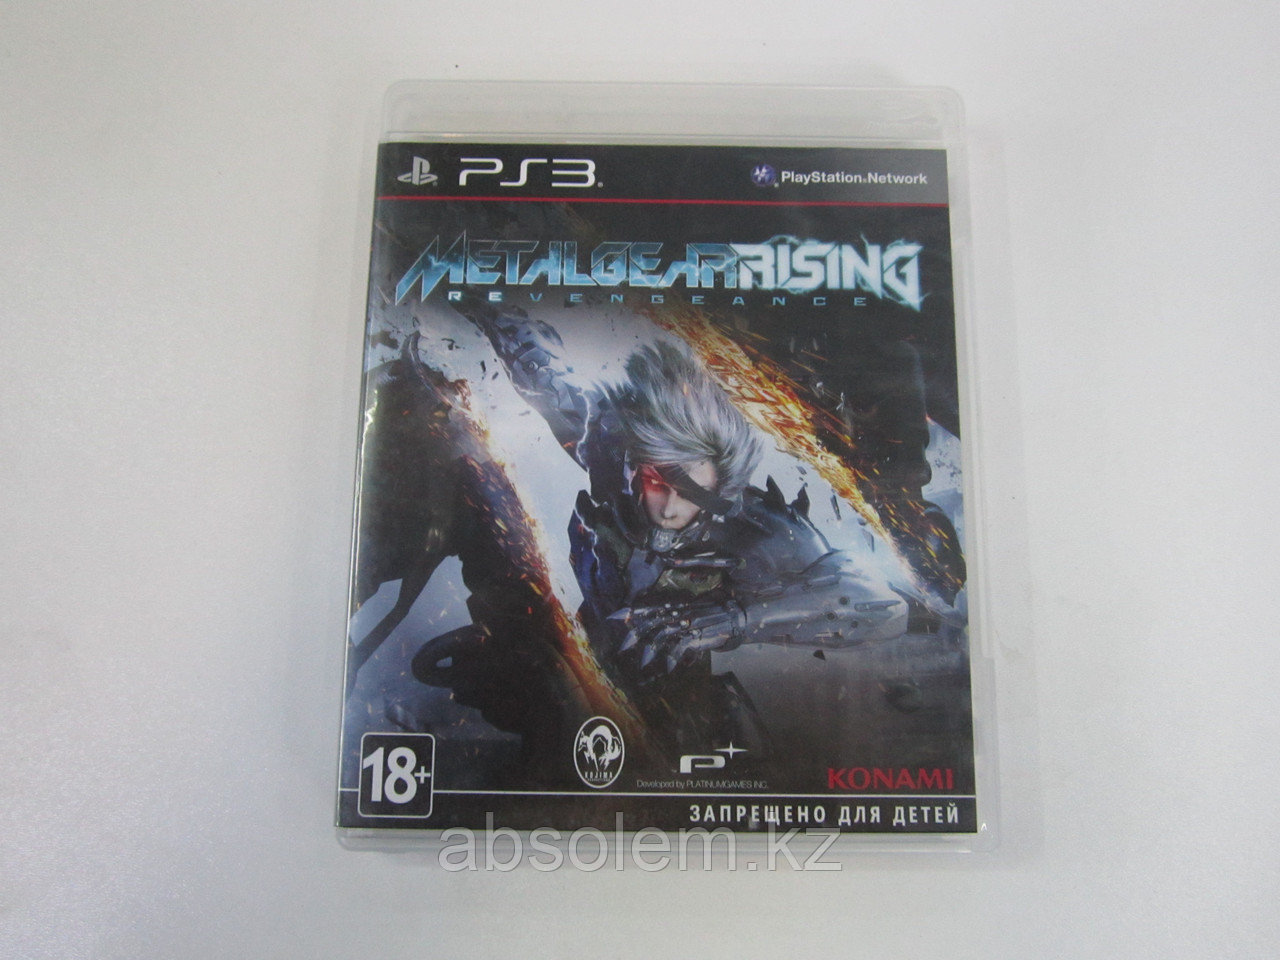 Игра для PS3 Metal Gear Rasing Revengeance (вскрытый), фото 1